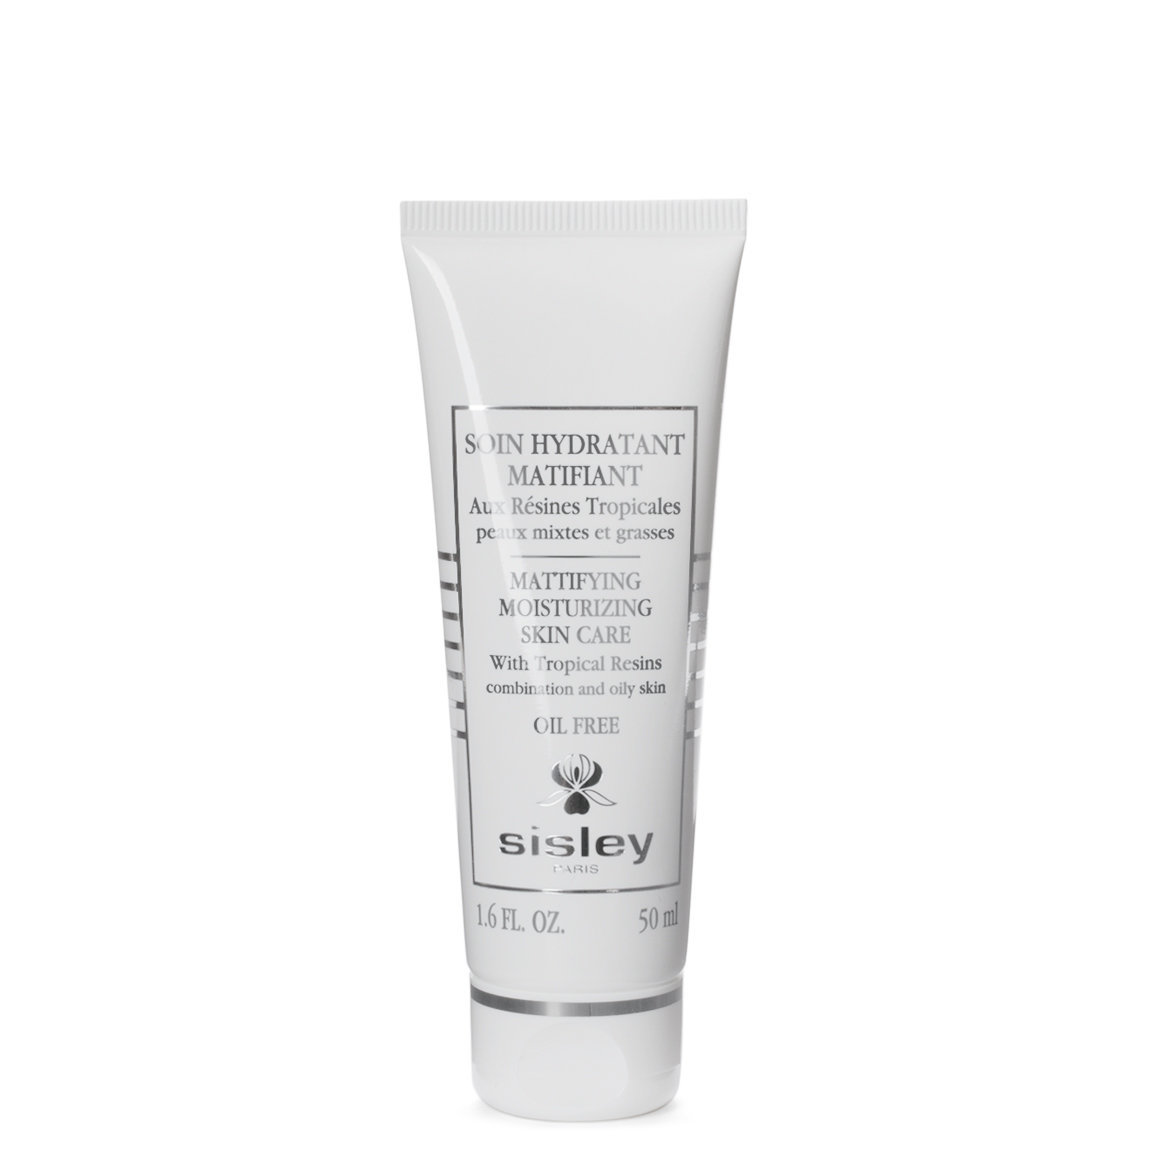 Sisley-Paris Mattifying Moisturizing Skin Care with Tropical Resins alternative view 1 - product swatch.